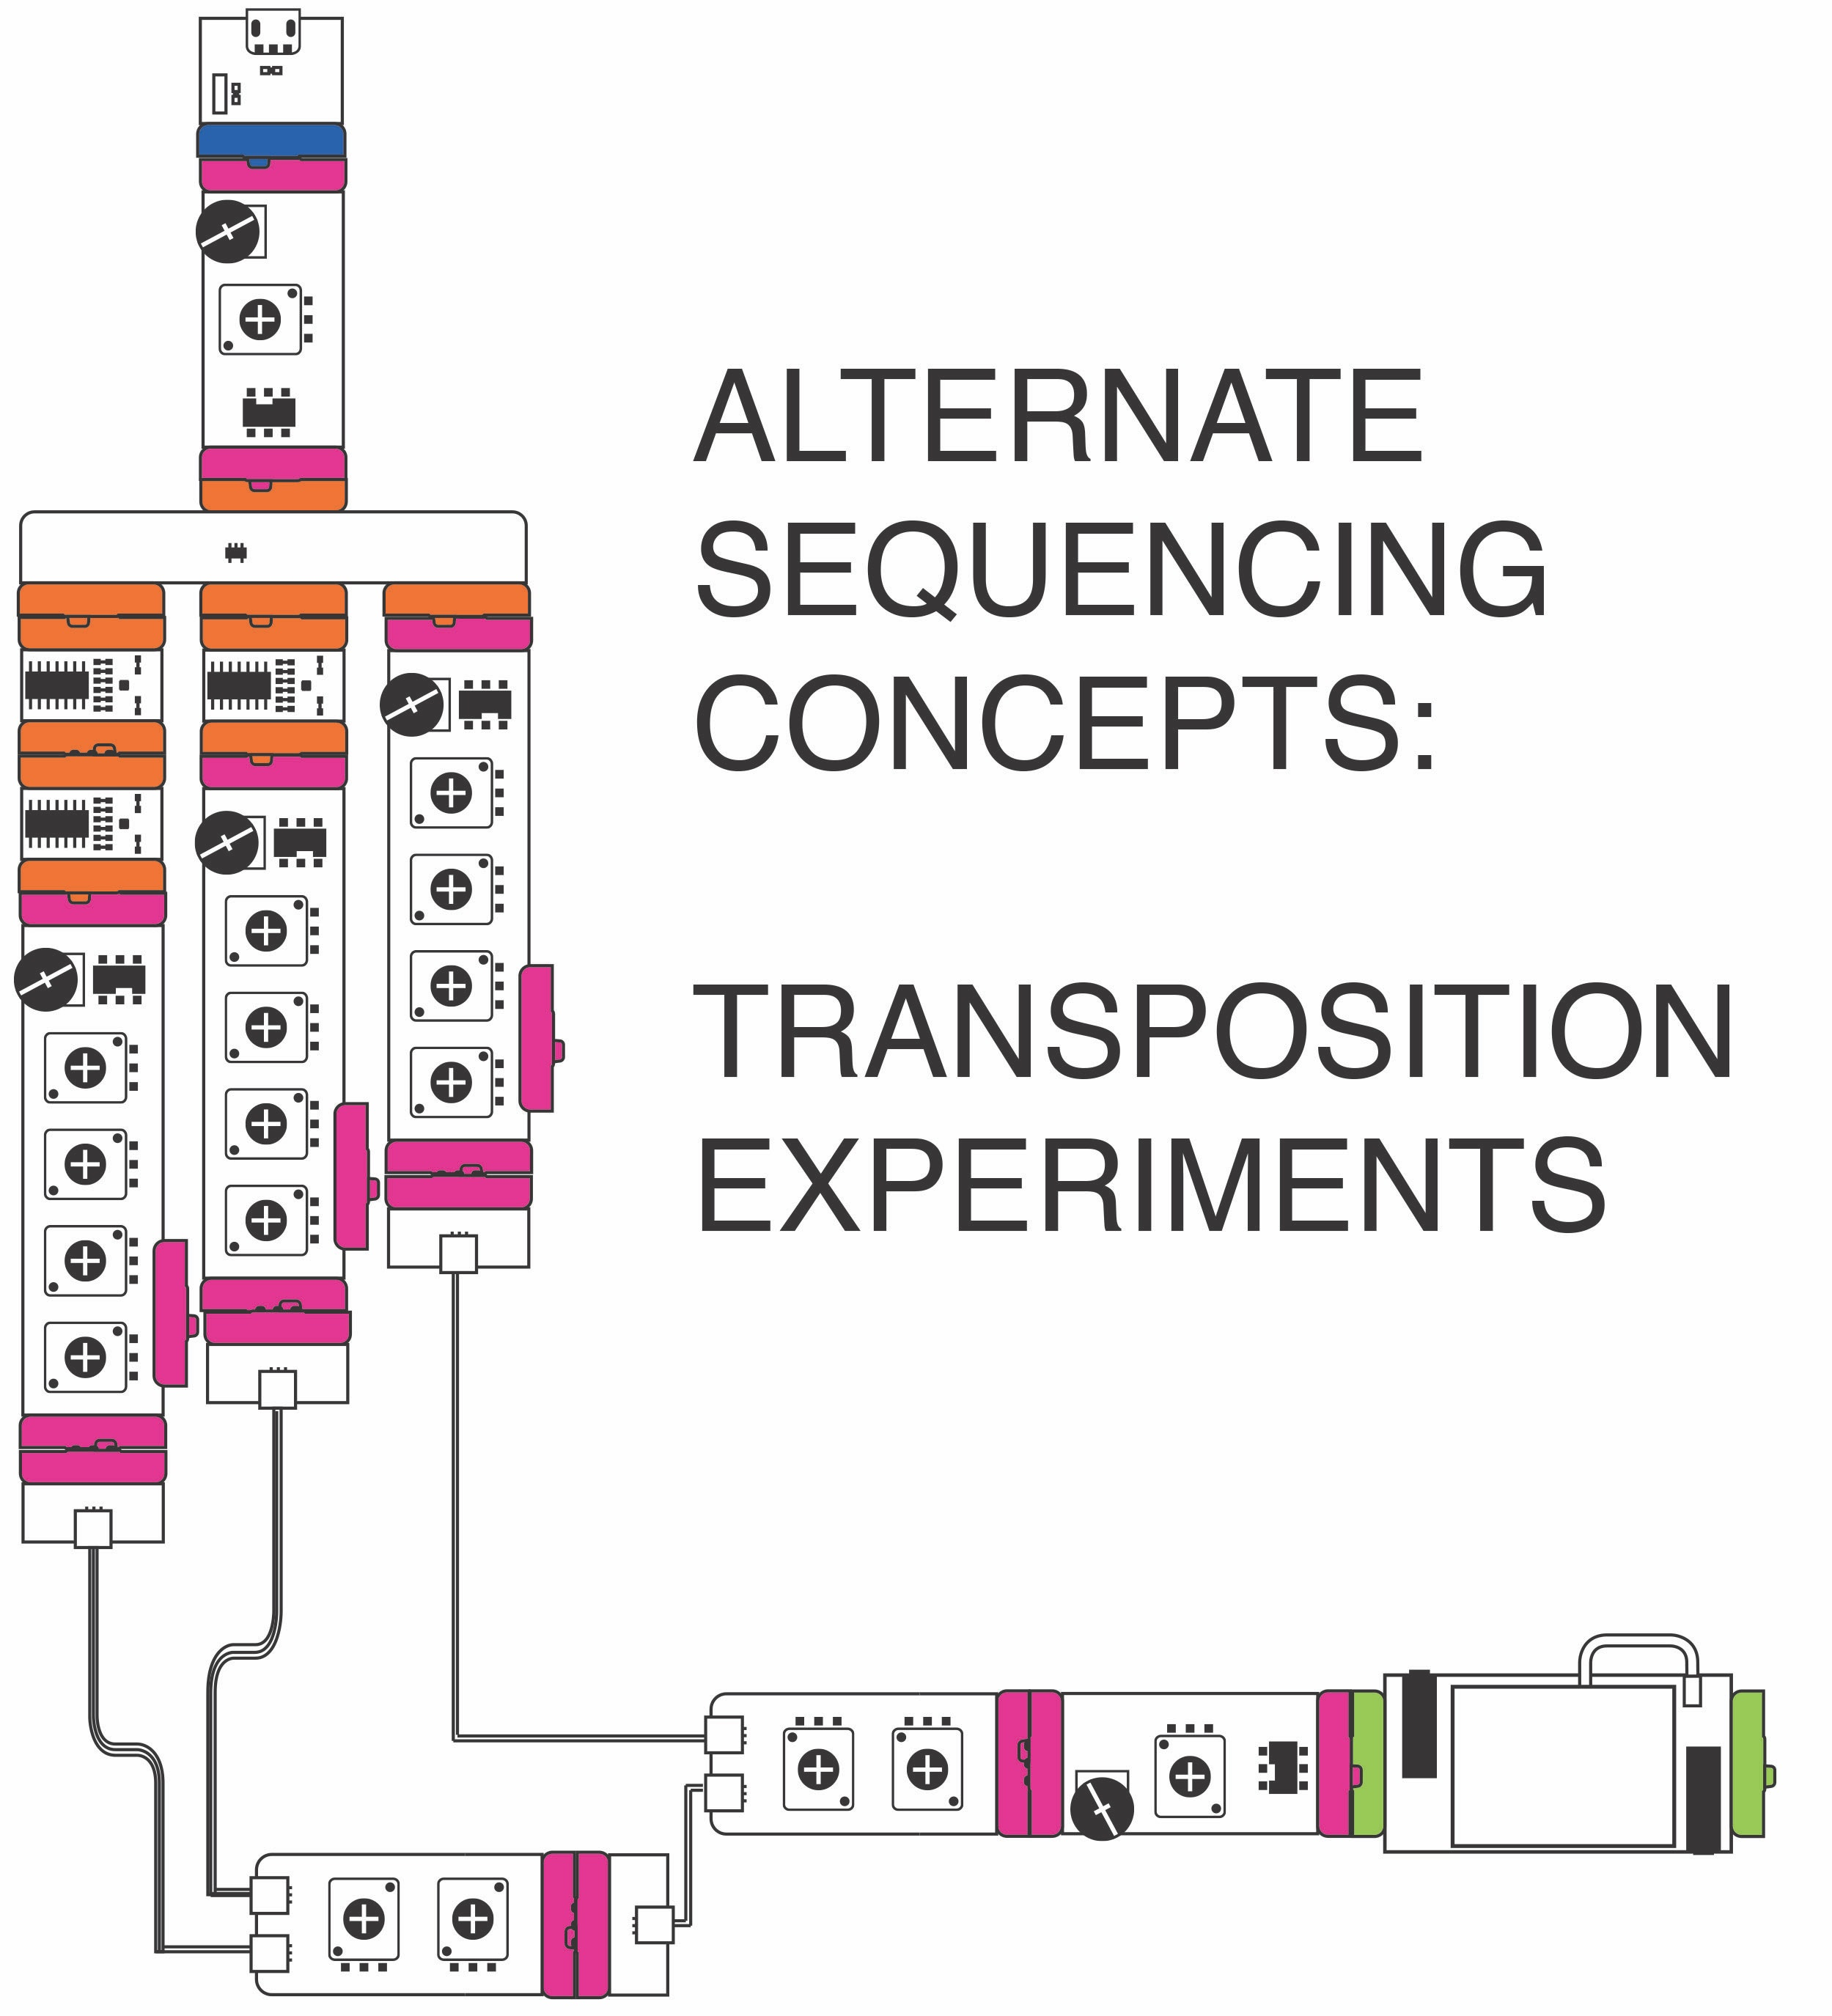 Alternate Sequencing Concepts: Transposition Experiments